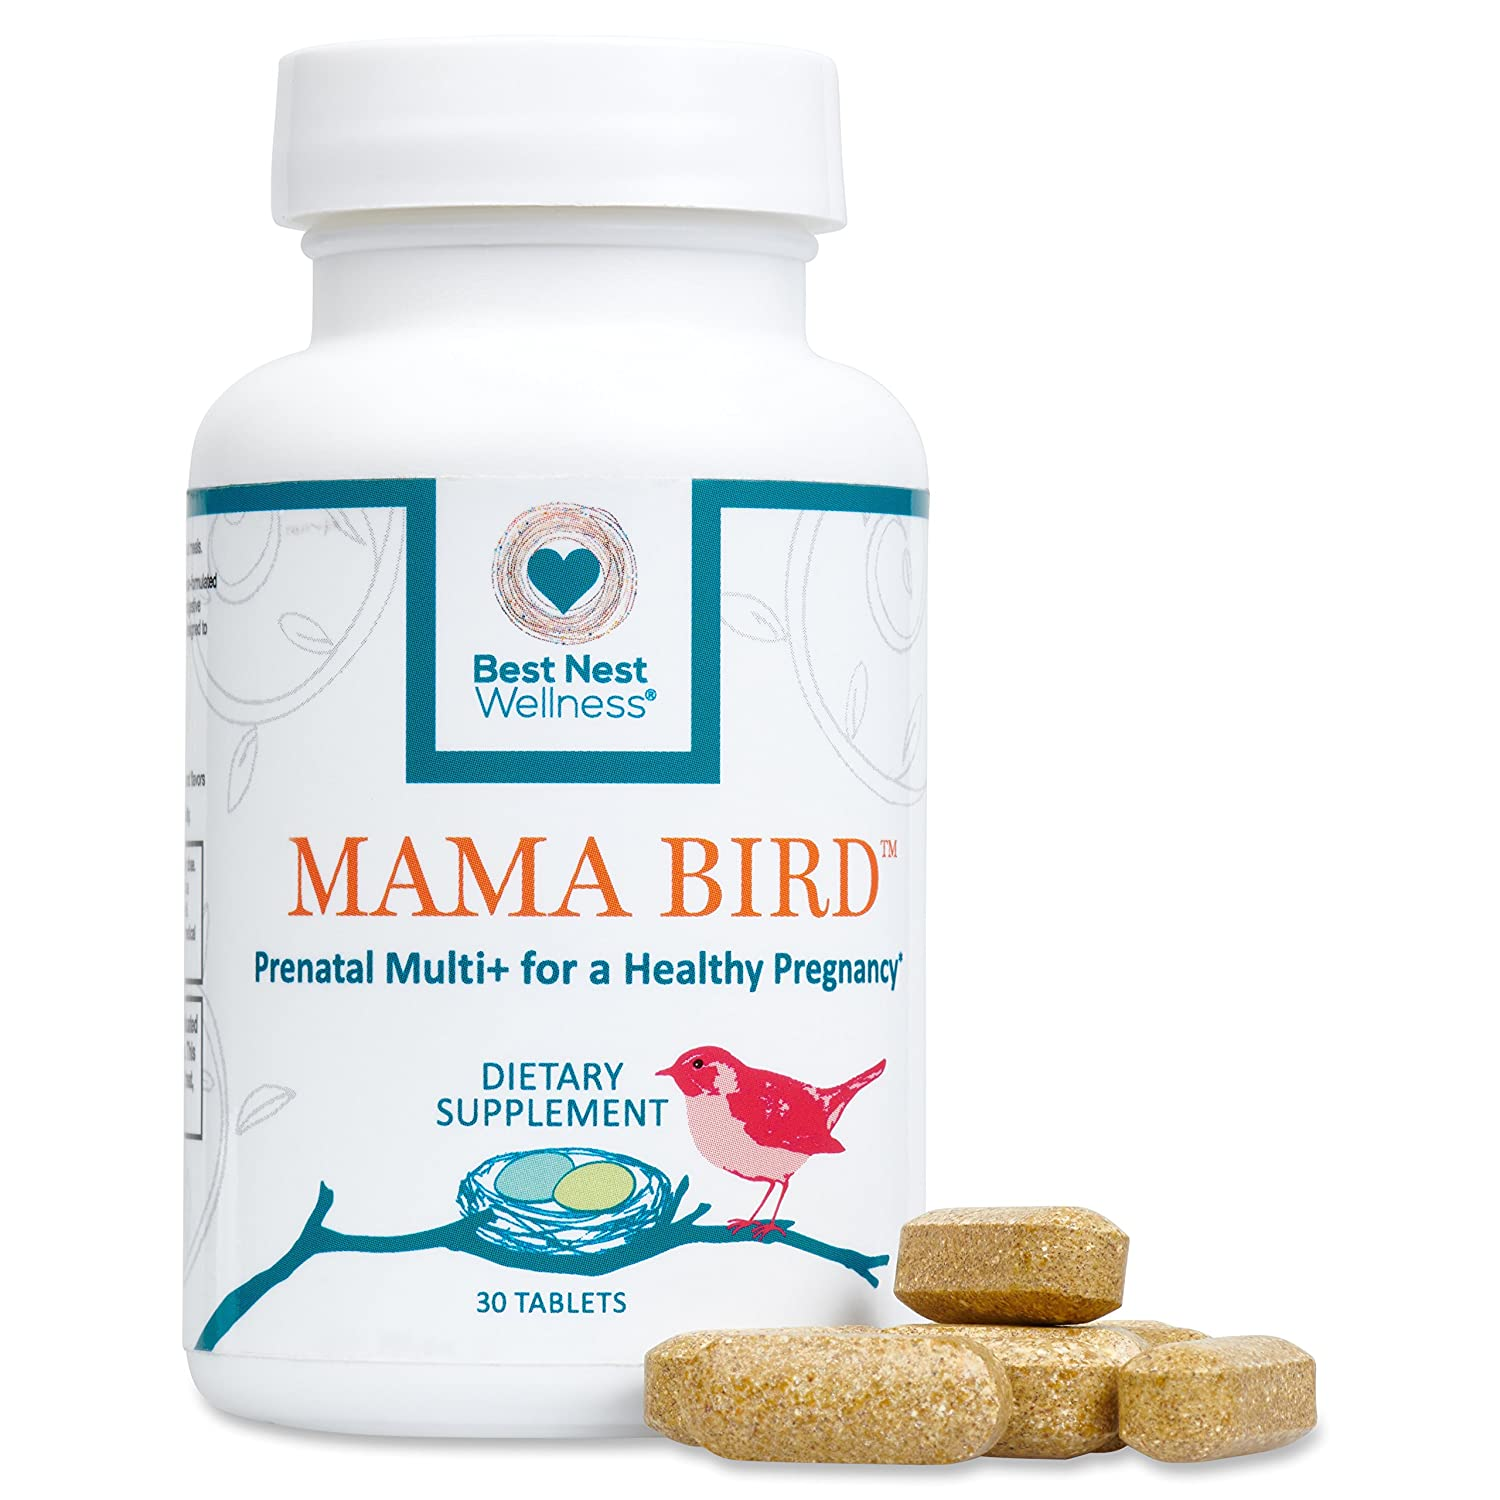 Mama Bird Prenatal Multivitamin, Methylfolate Folic Acid , Methylcobalamin B12 , 100 Natural Whole Food Organic Herbal Blend, Vegan, Once Daily Prenatal Vitamins, 30 Ct, Best Nest Wellness